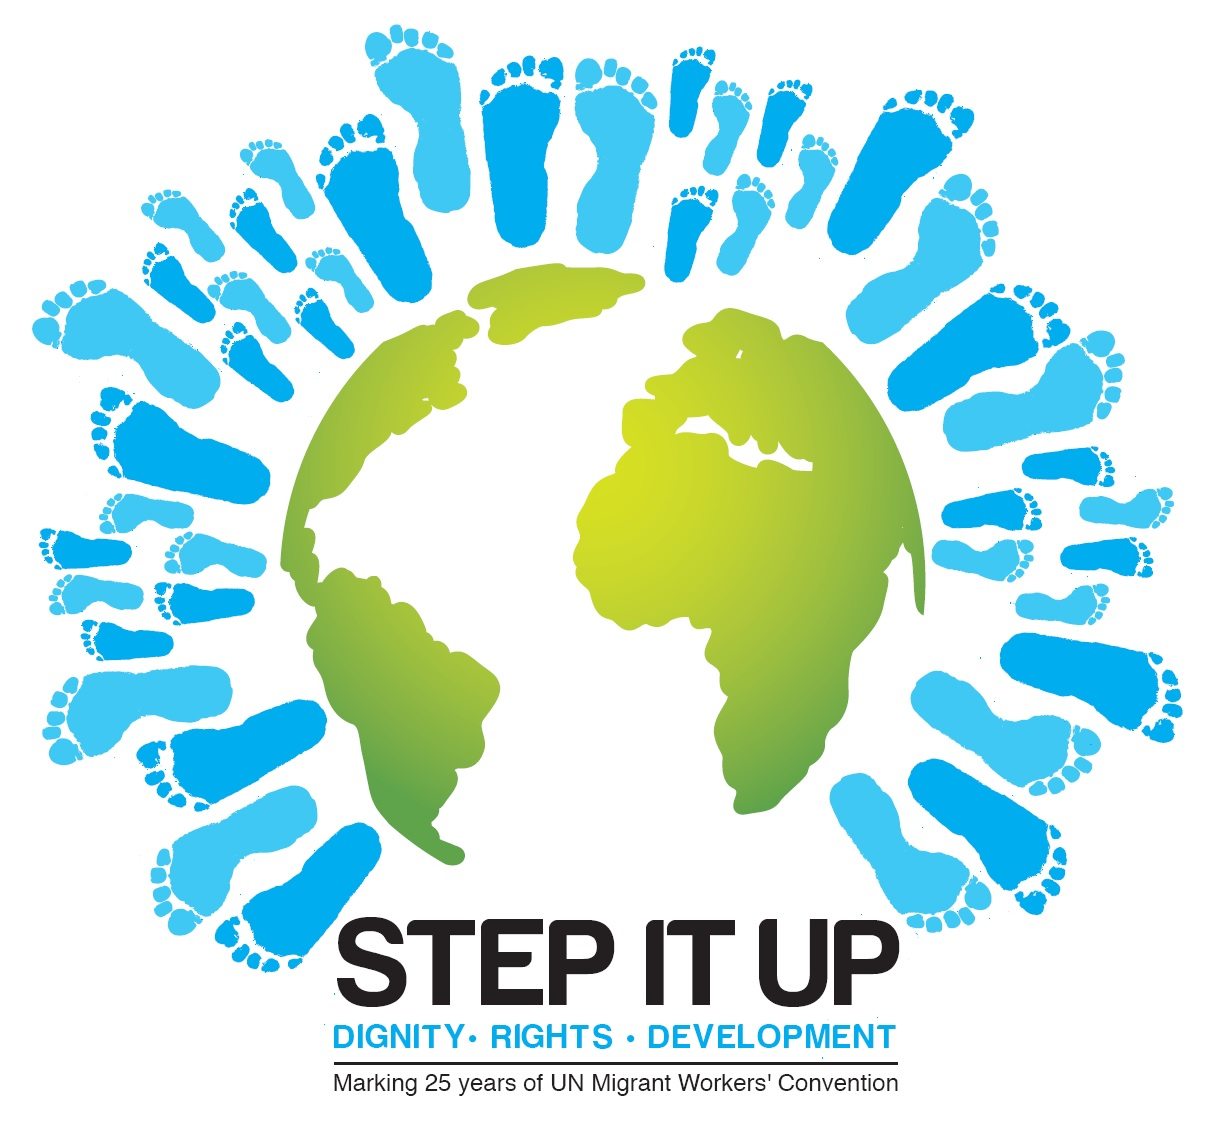 Step-it-up-logo_Final17Nov2014